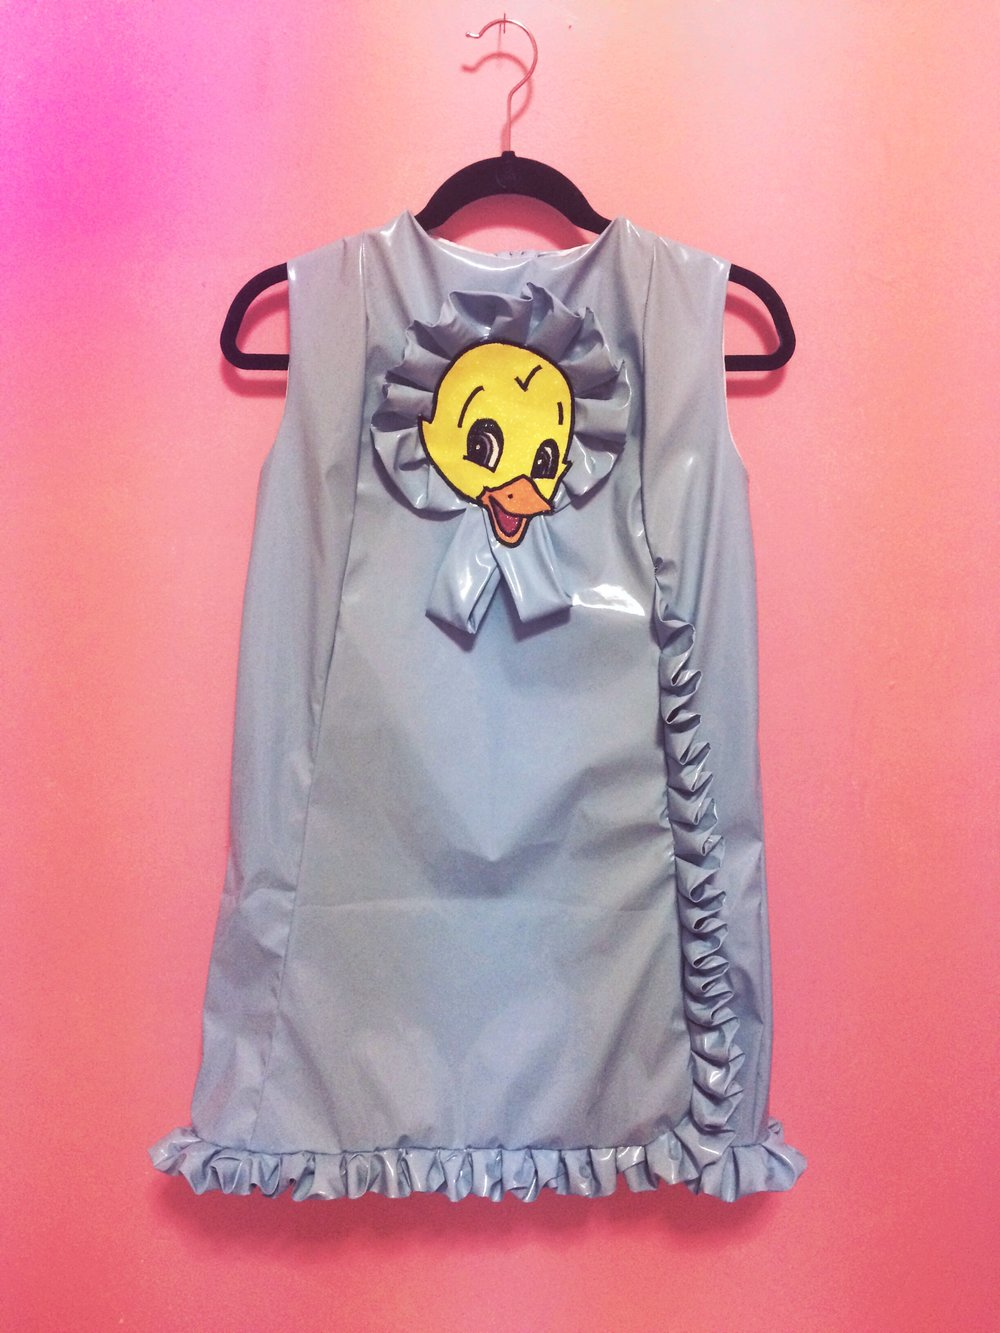 2016 Duck Dress collaboration for Melanie Martinez